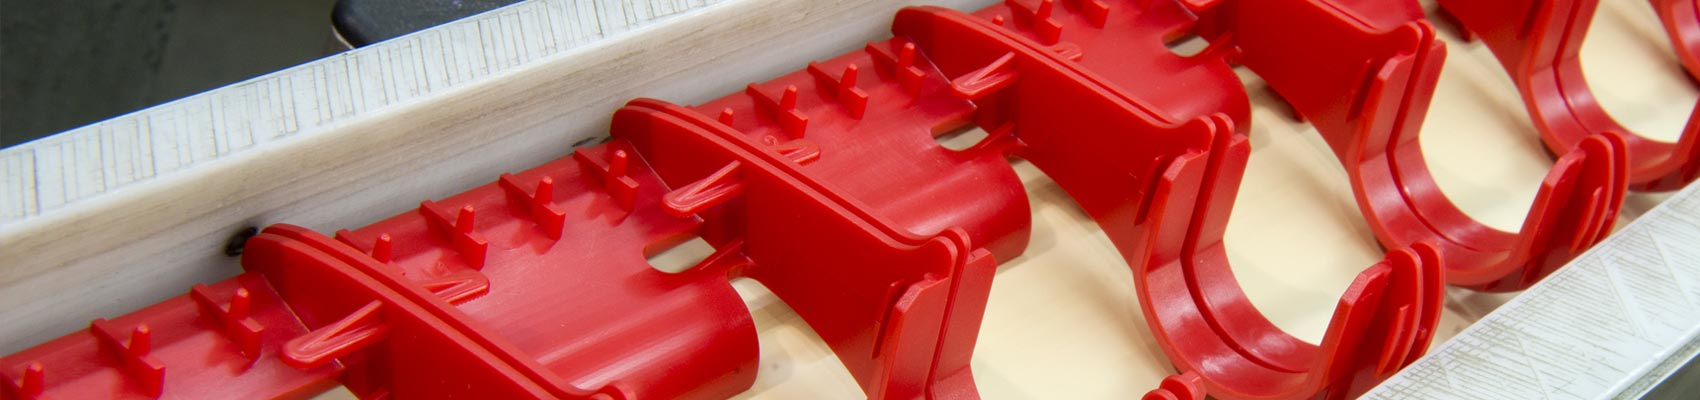 Plastic Injection Mold Parts